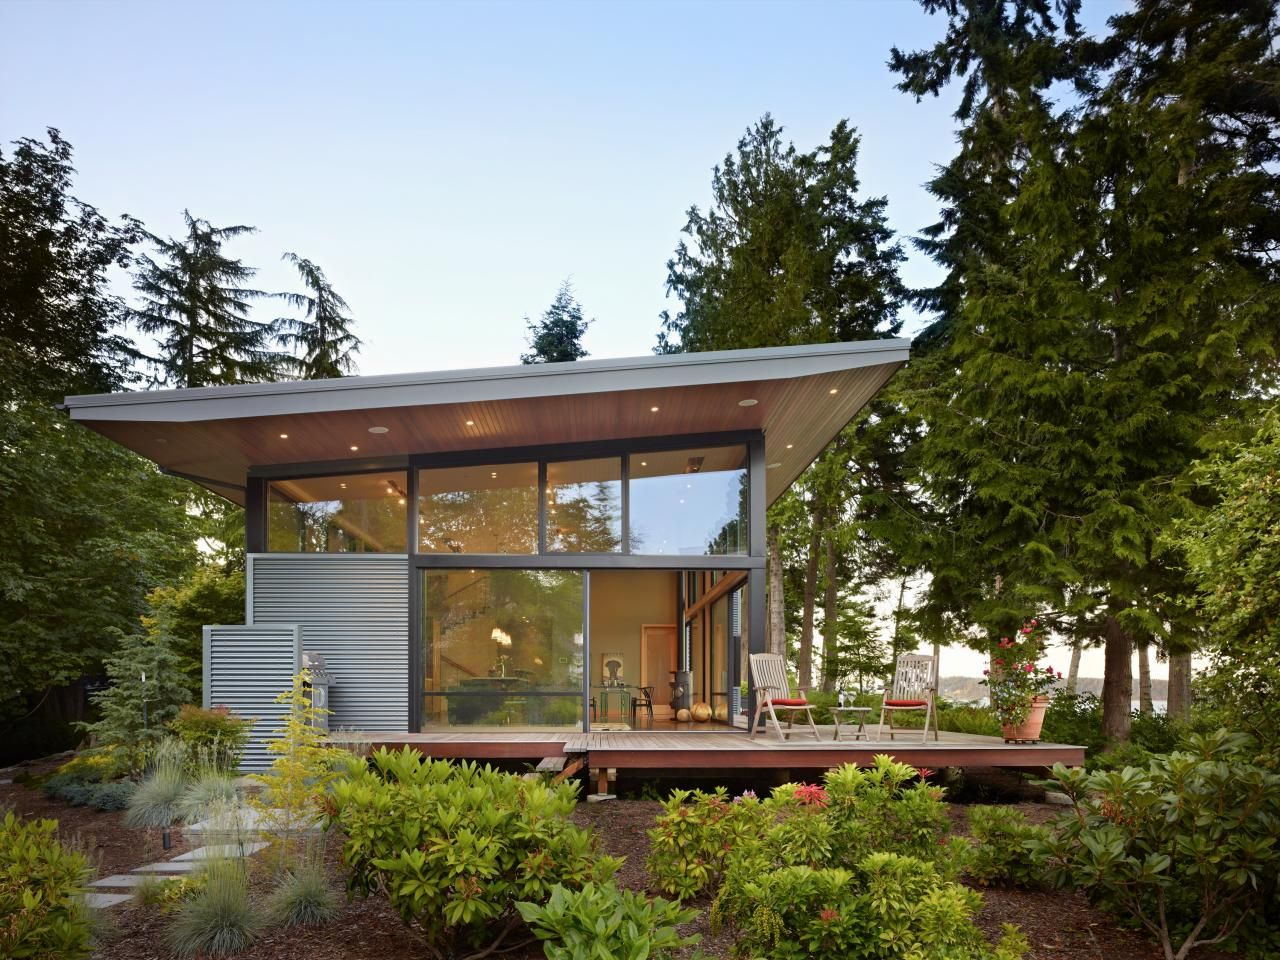 comely platinum home designs. Port Ludlow Residence Perfect Glass Home Design Ideas by Finne Architects This contemporary home exterior features corrugated metal panels